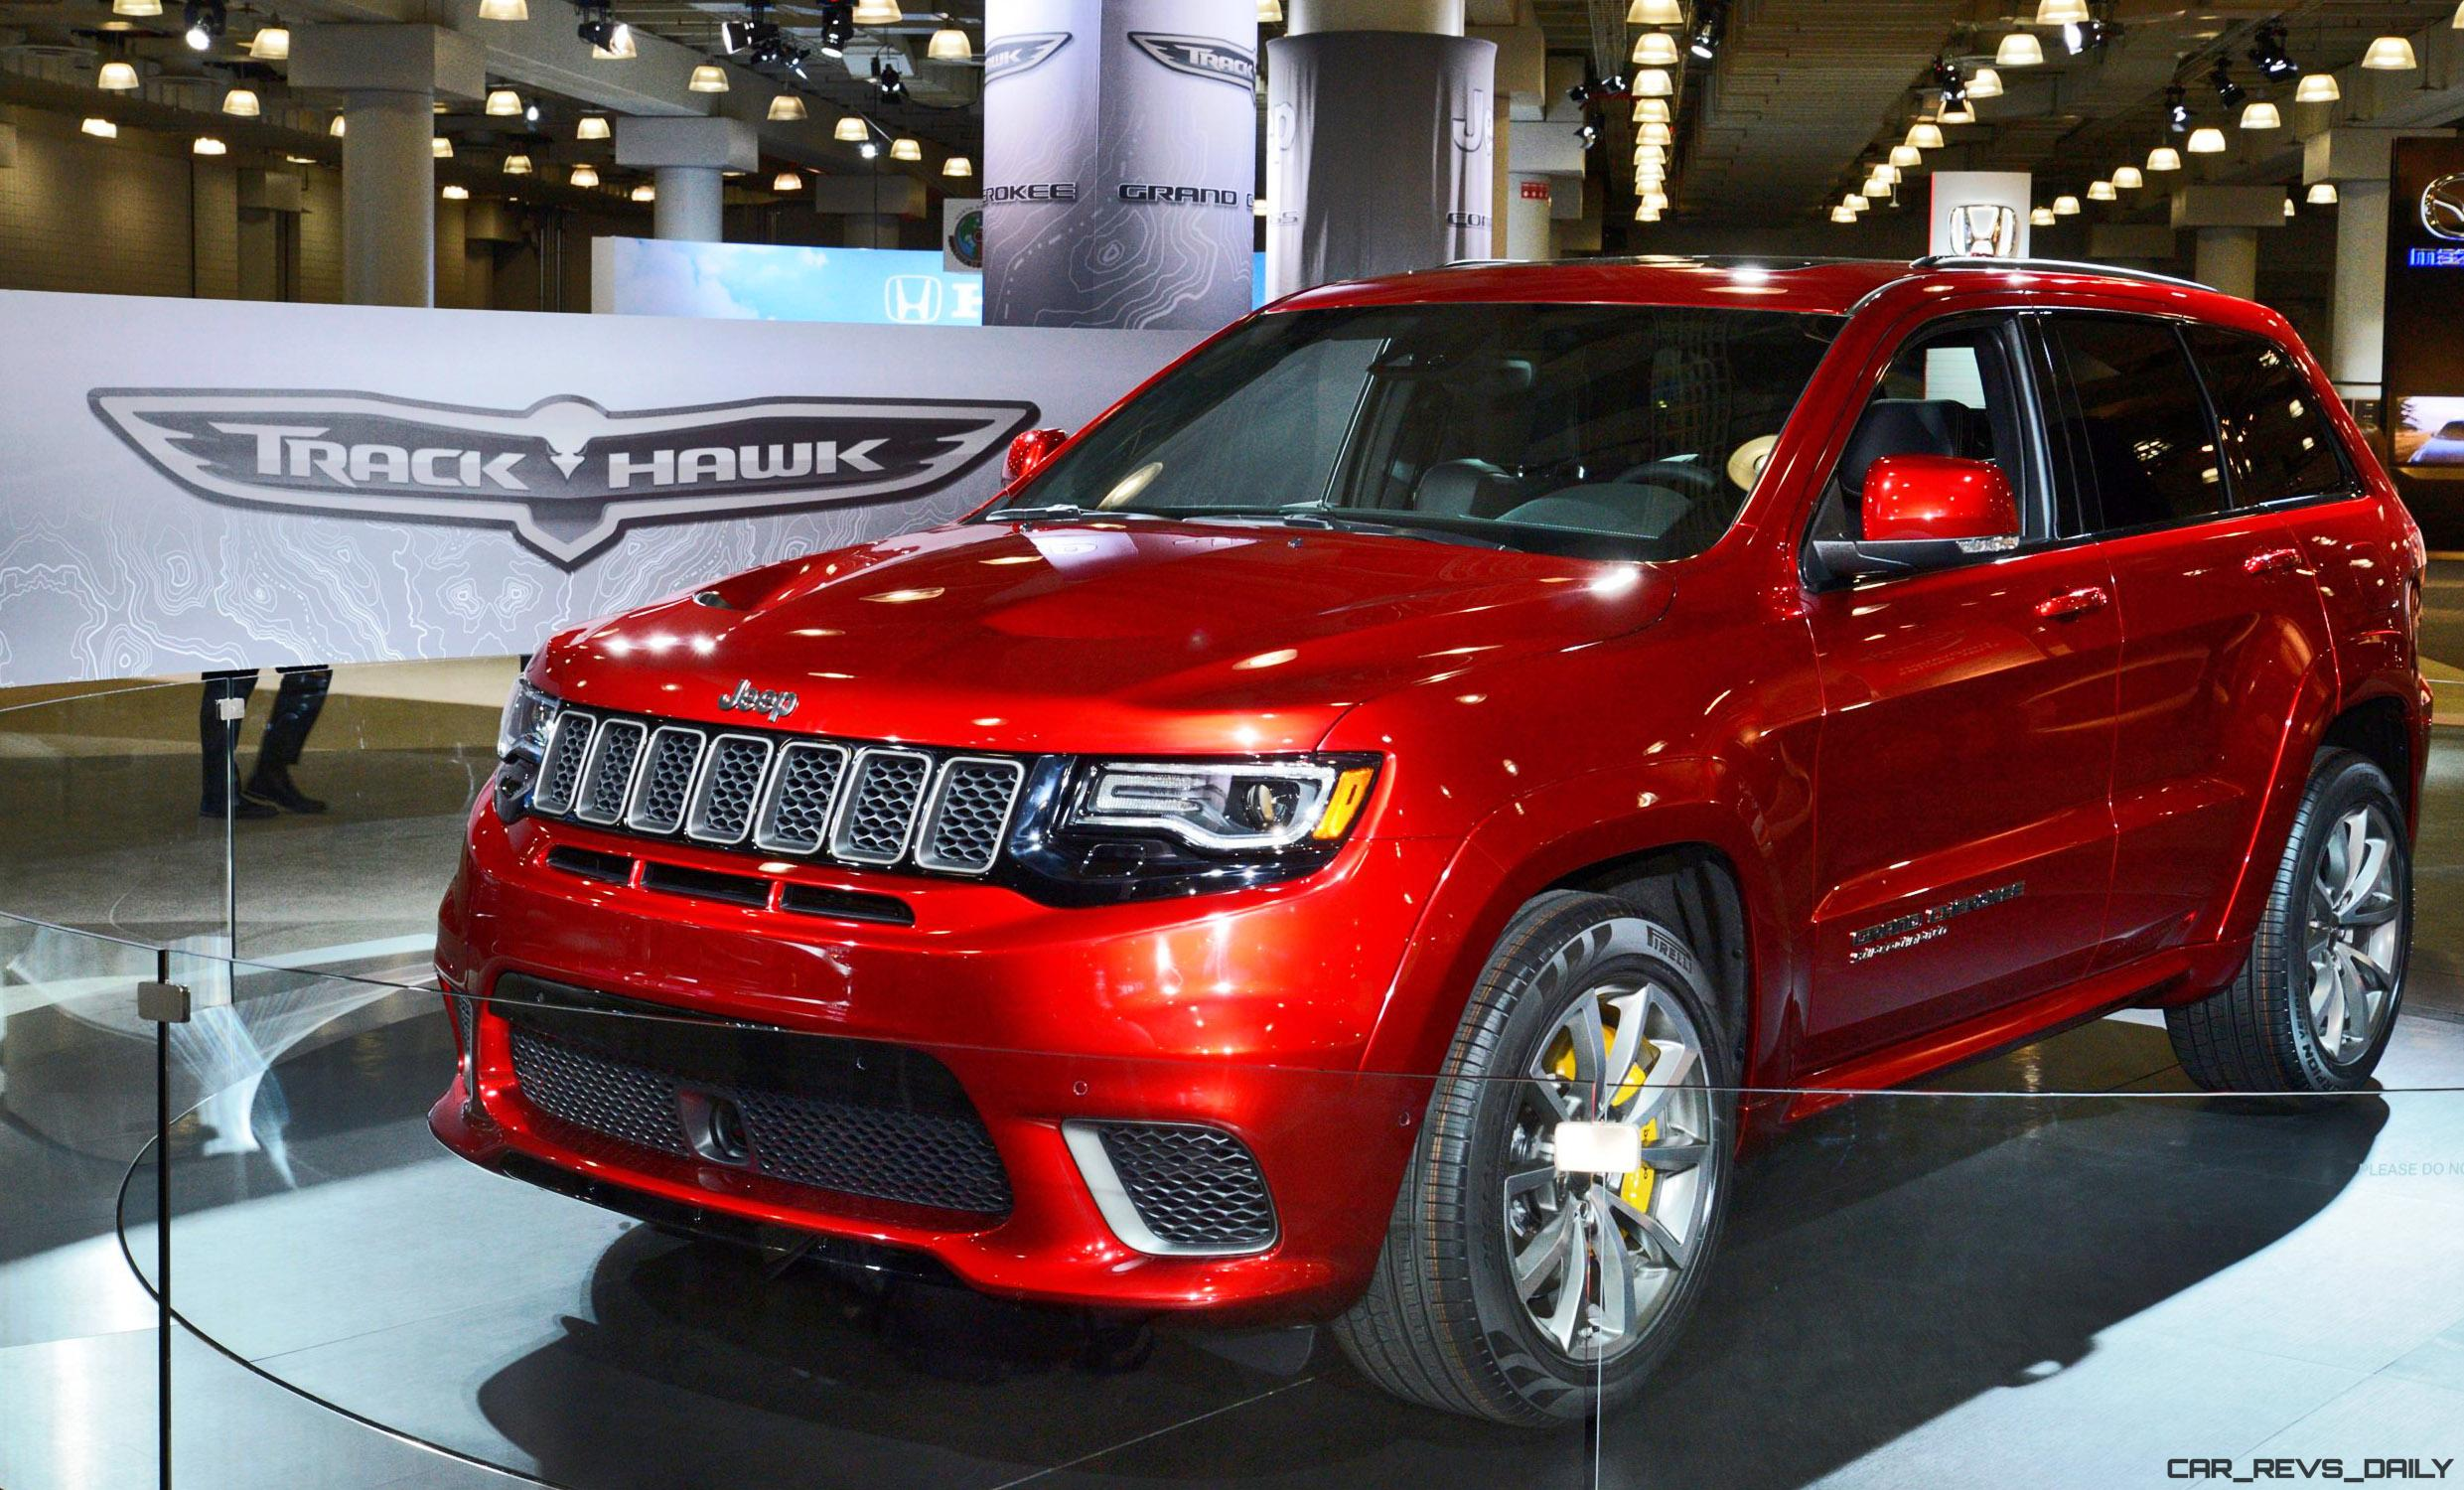 180mph 2018 jeep grand cherokee srt trackhawk 25 photo debut w video car shopping. Black Bedroom Furniture Sets. Home Design Ideas